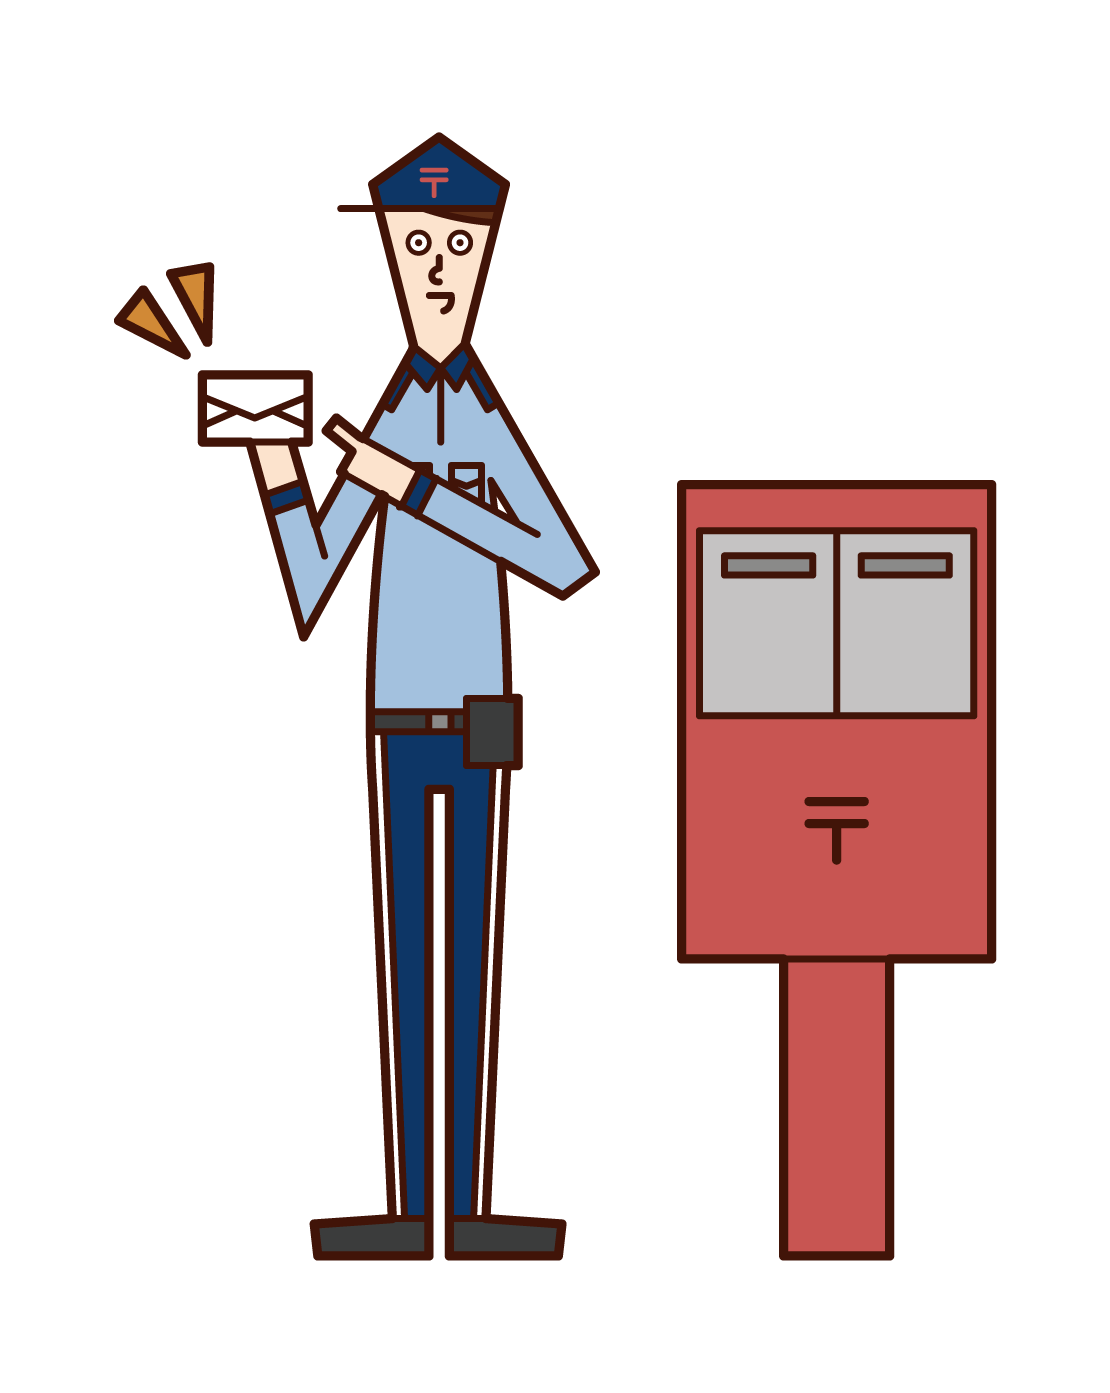 Illustration of a postman standing next to a postoffice